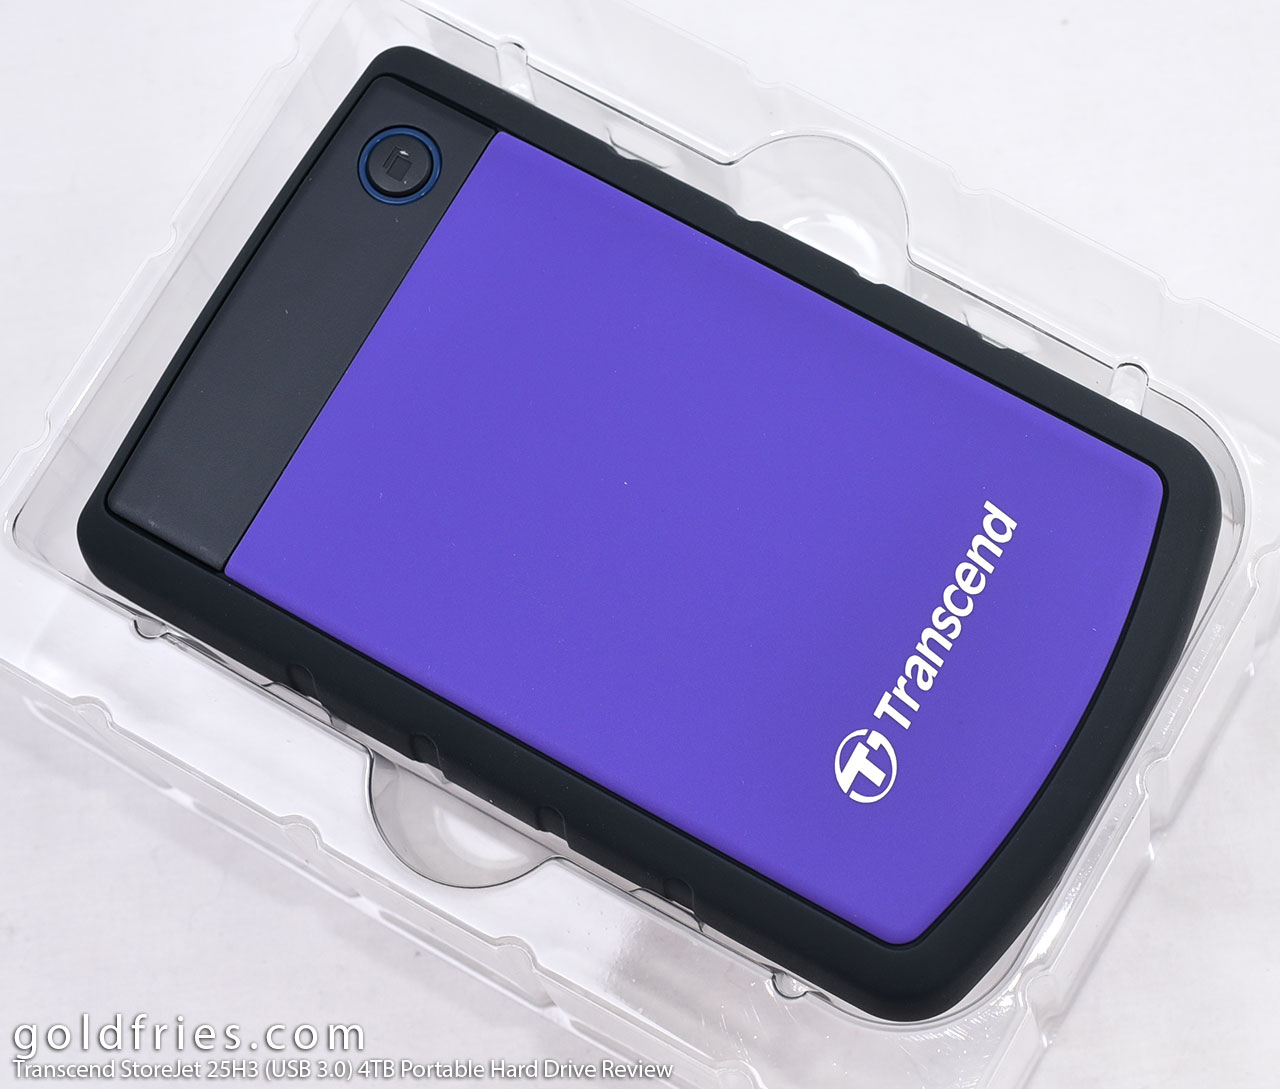 Transcend StoreJet 25H3 (USB 3.0) Portable Hard Drive Review